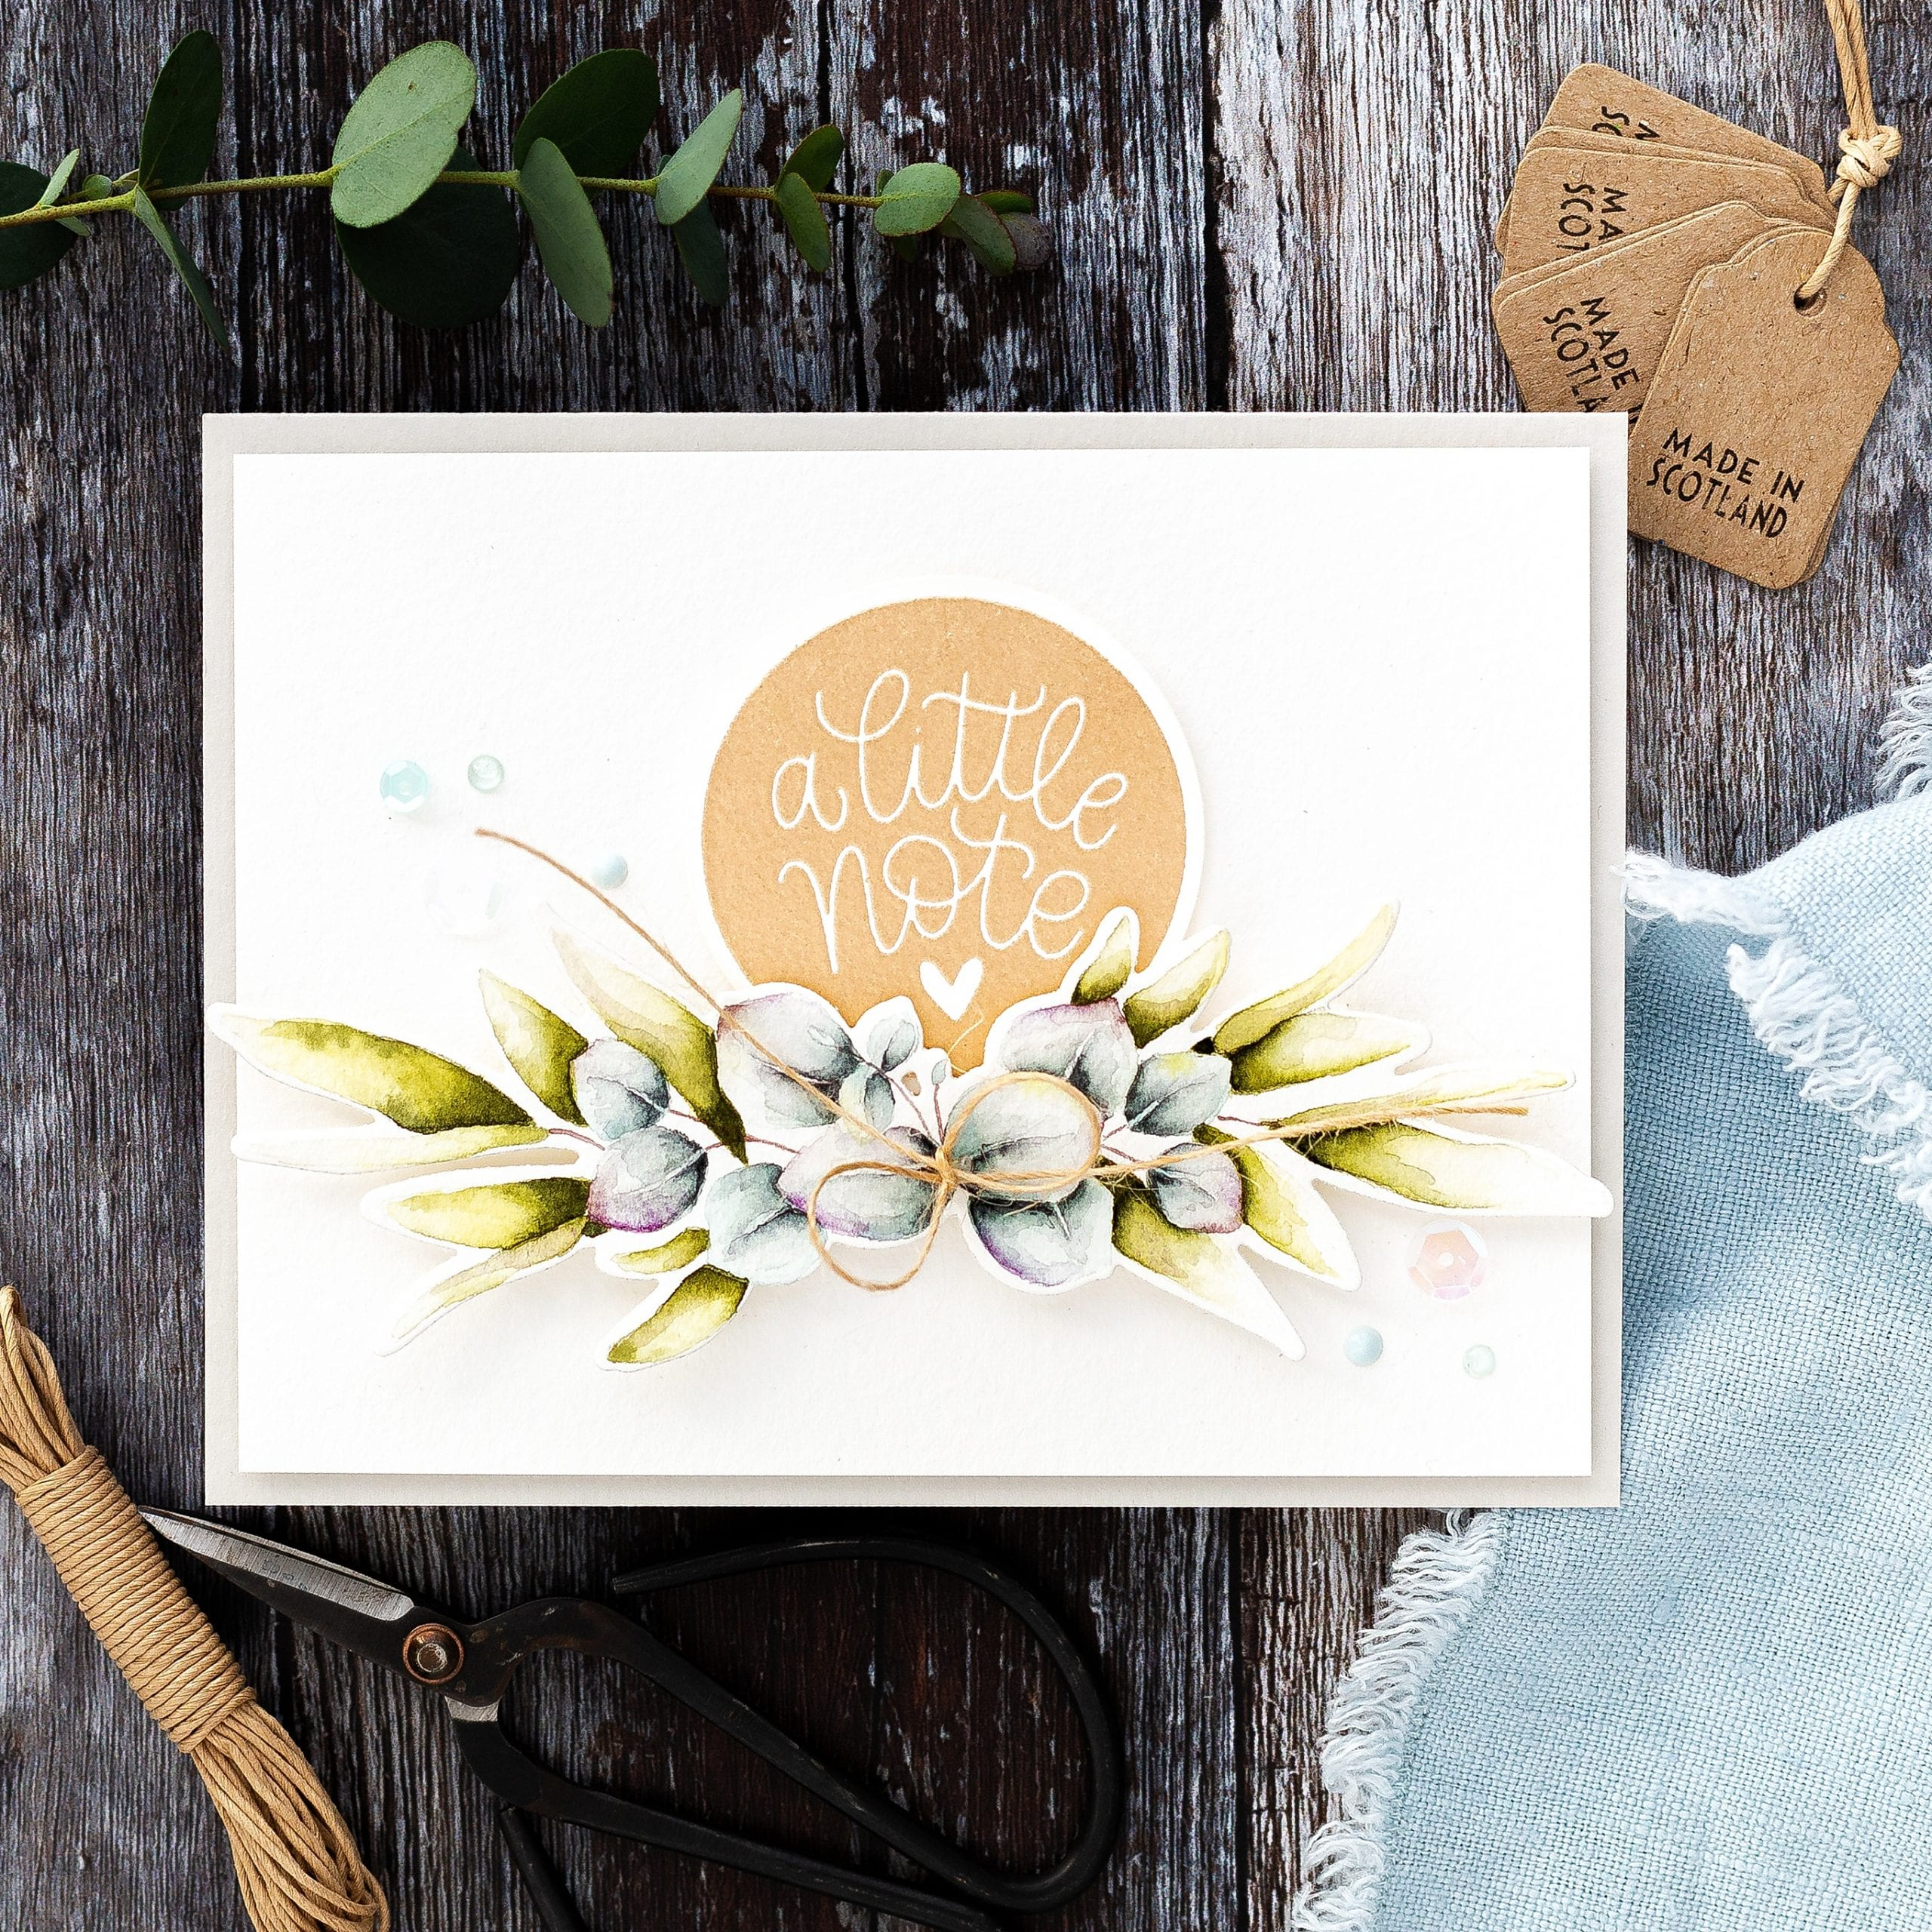 Watercoloured eucalyptus tutorial handmade card by Debby Hughes using supplies from Simon Says Stamp #watercolor #homemade #tutorial